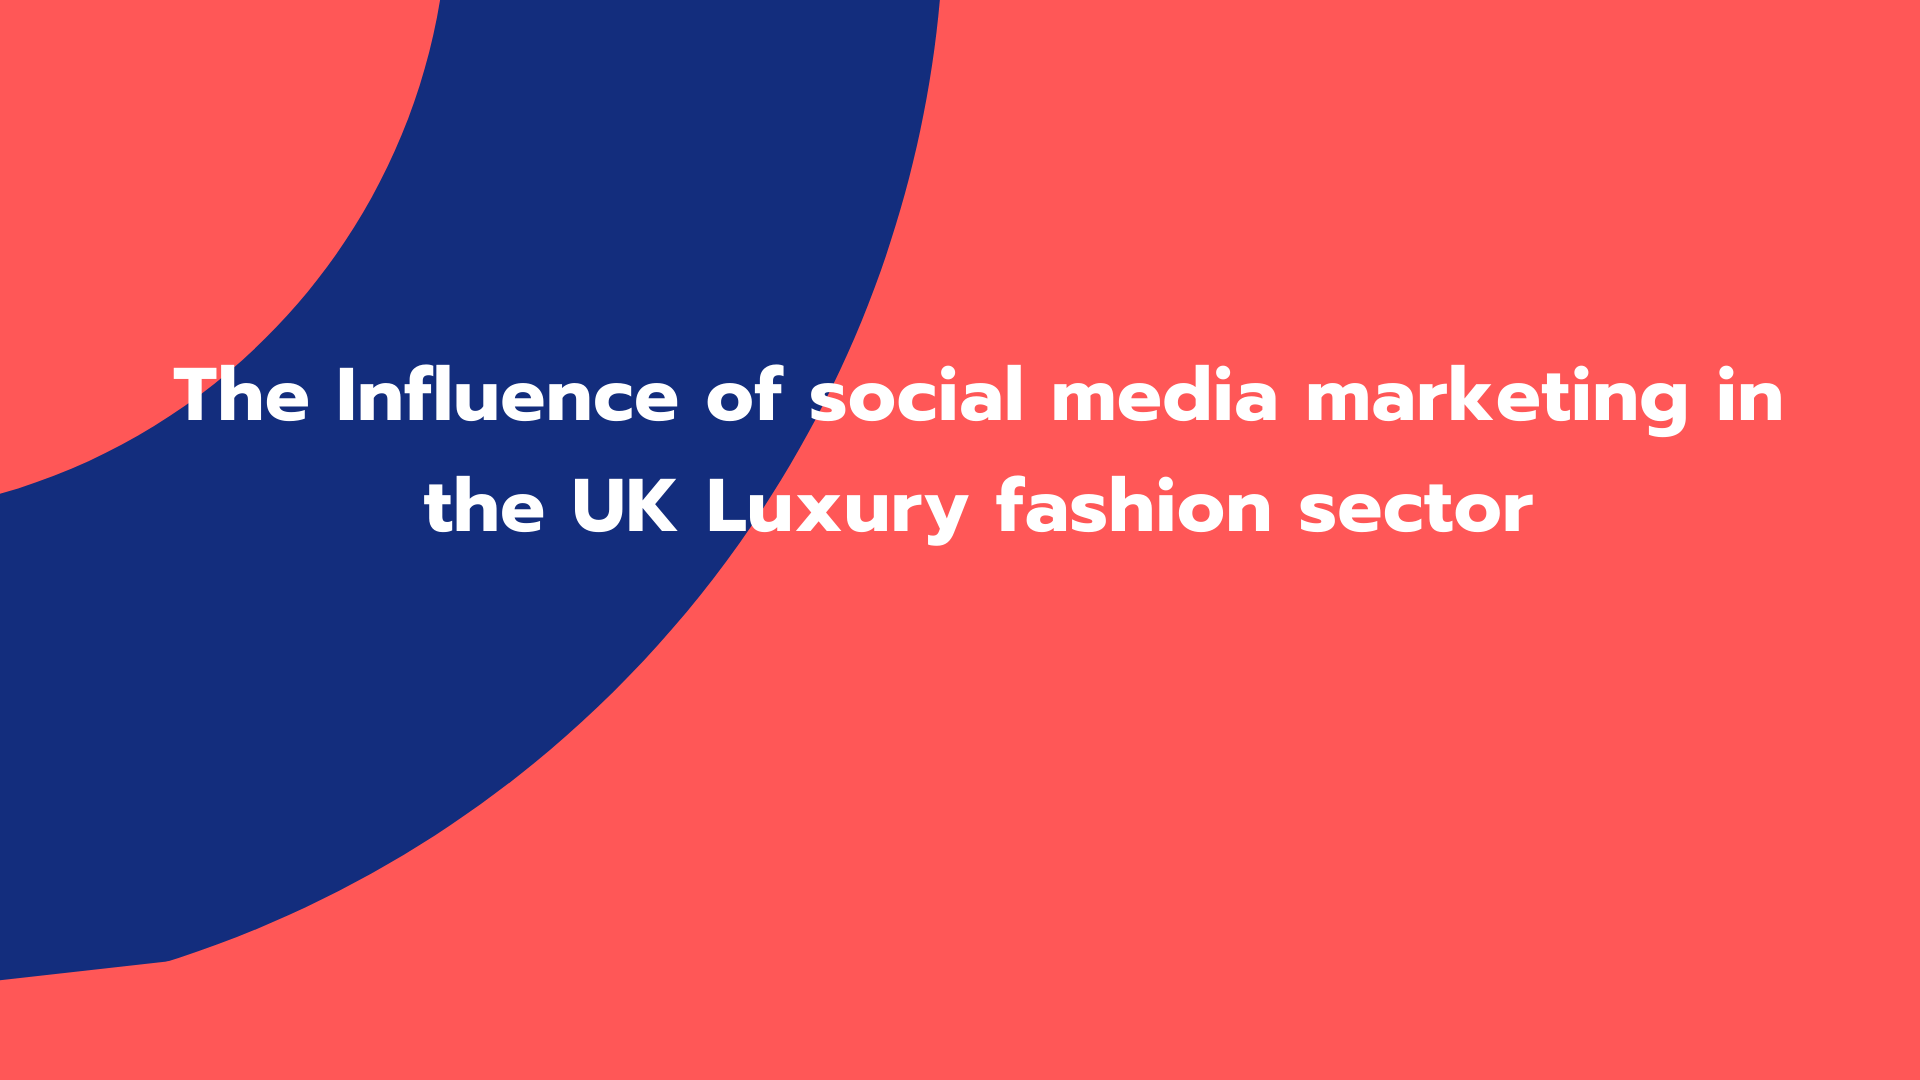 The Influence of social media marketing in the UK Luxury fashion sector